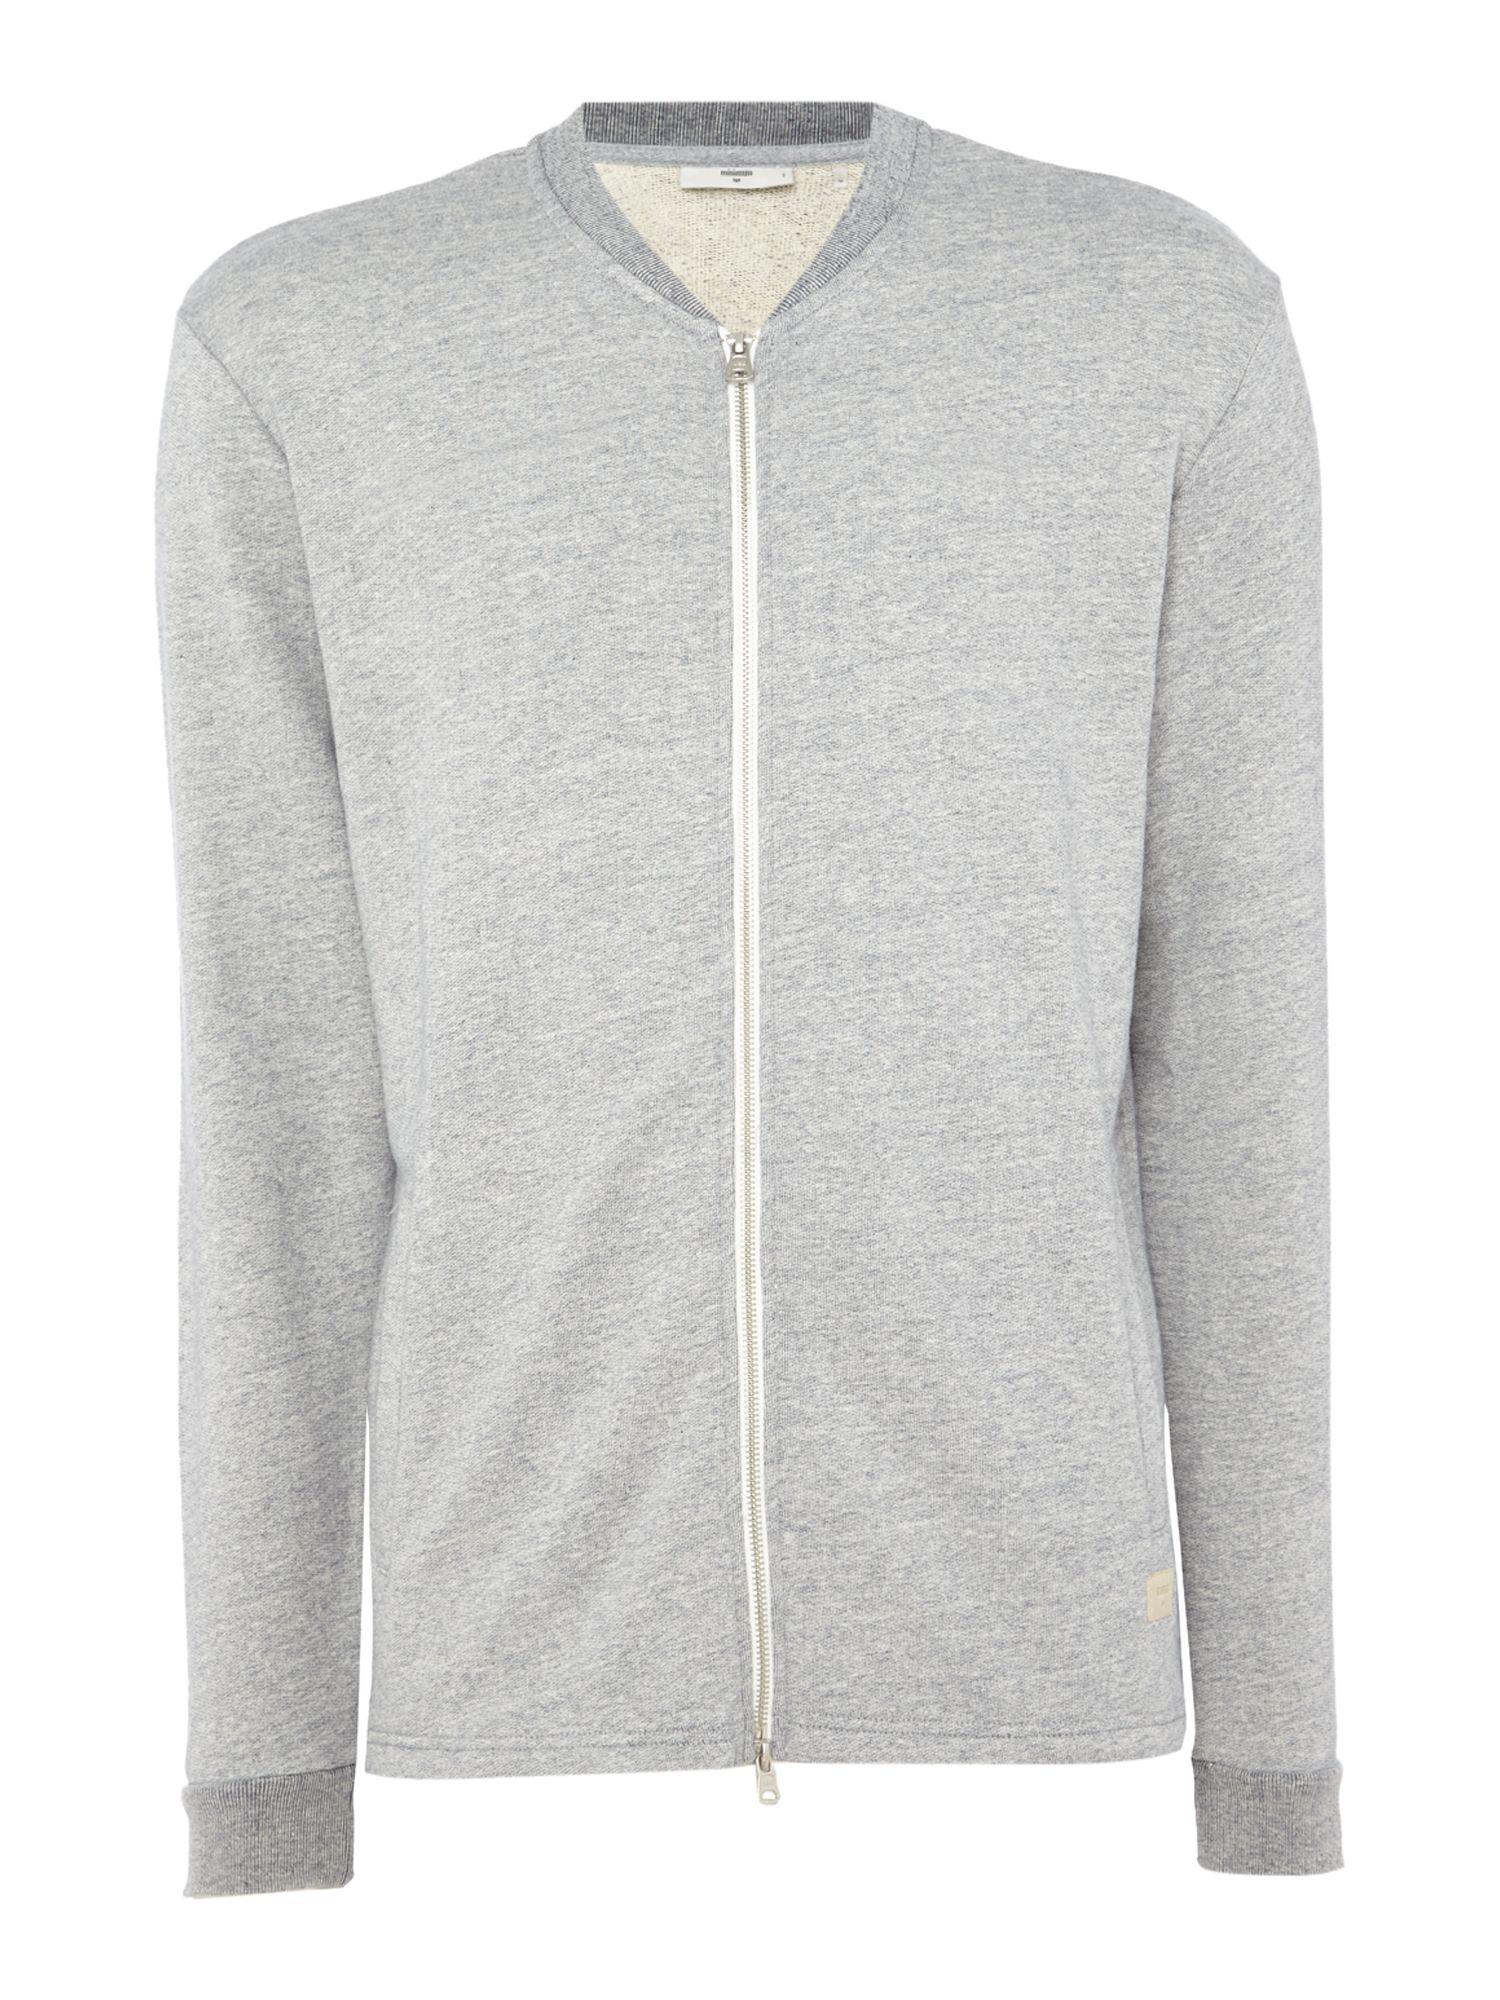 Men's Minimum Grenola Sweatshirt, Denim Faded